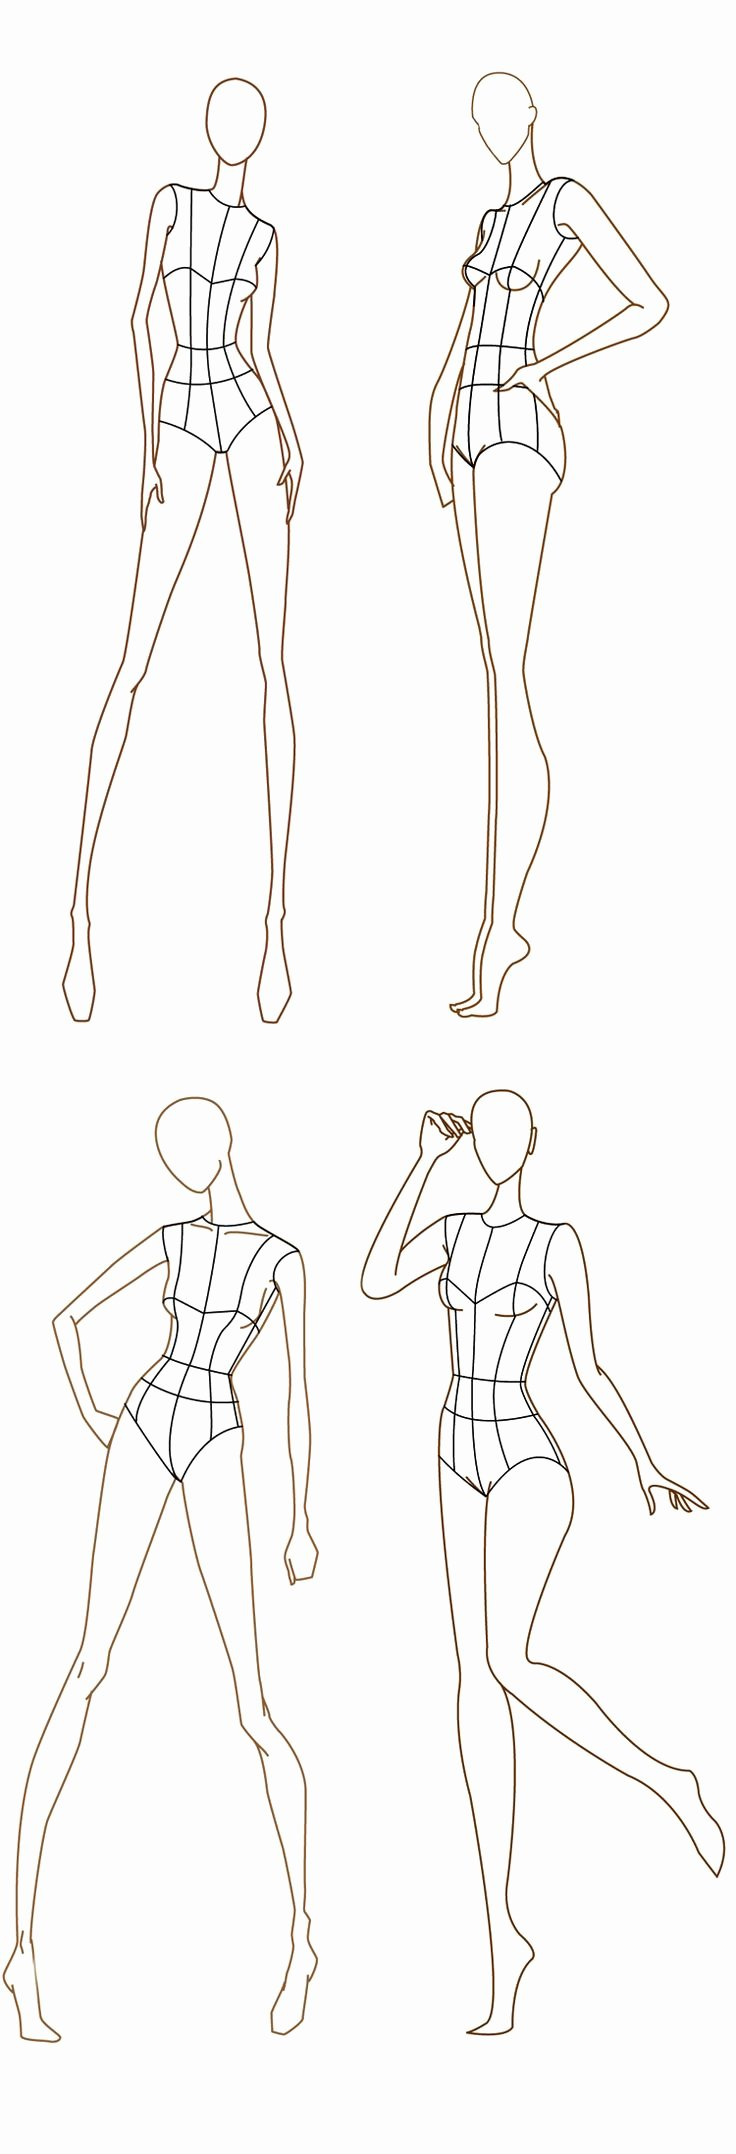 Blank Female Body Template Unique 1000 Images About Fashion Illustration Templates On